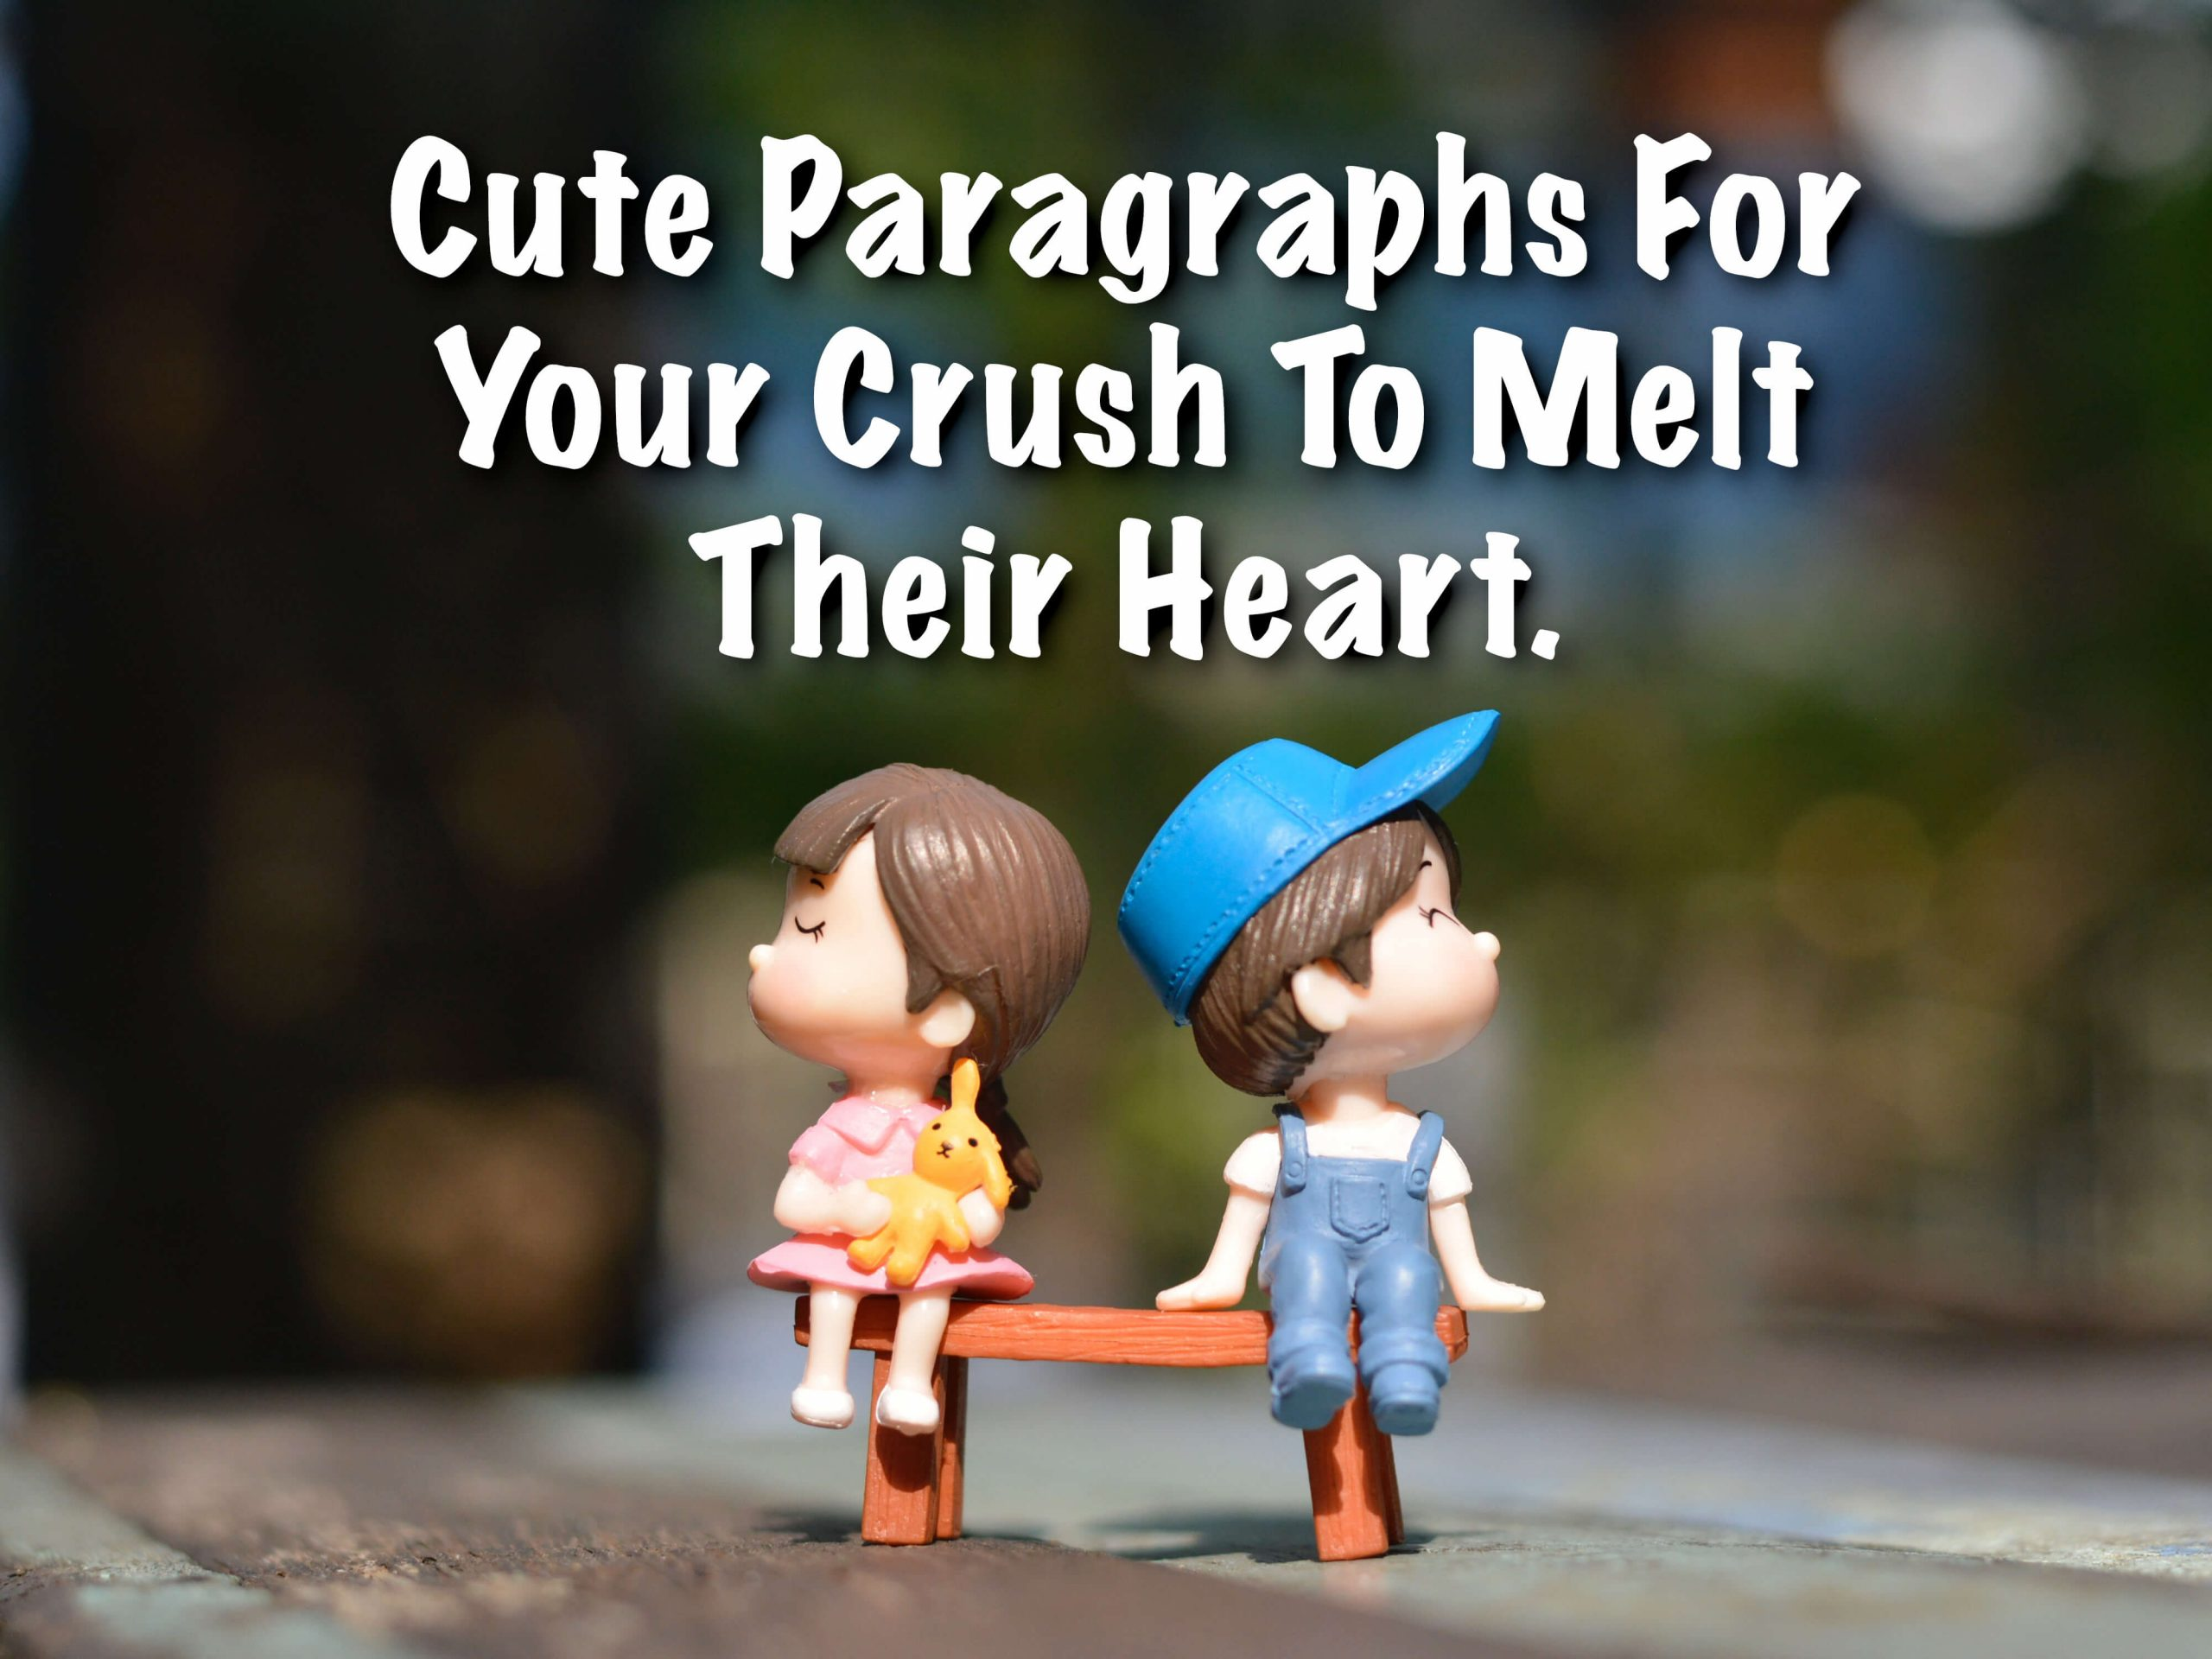 Cute Paragraphs To Text Your Crush To Melt Their Heart